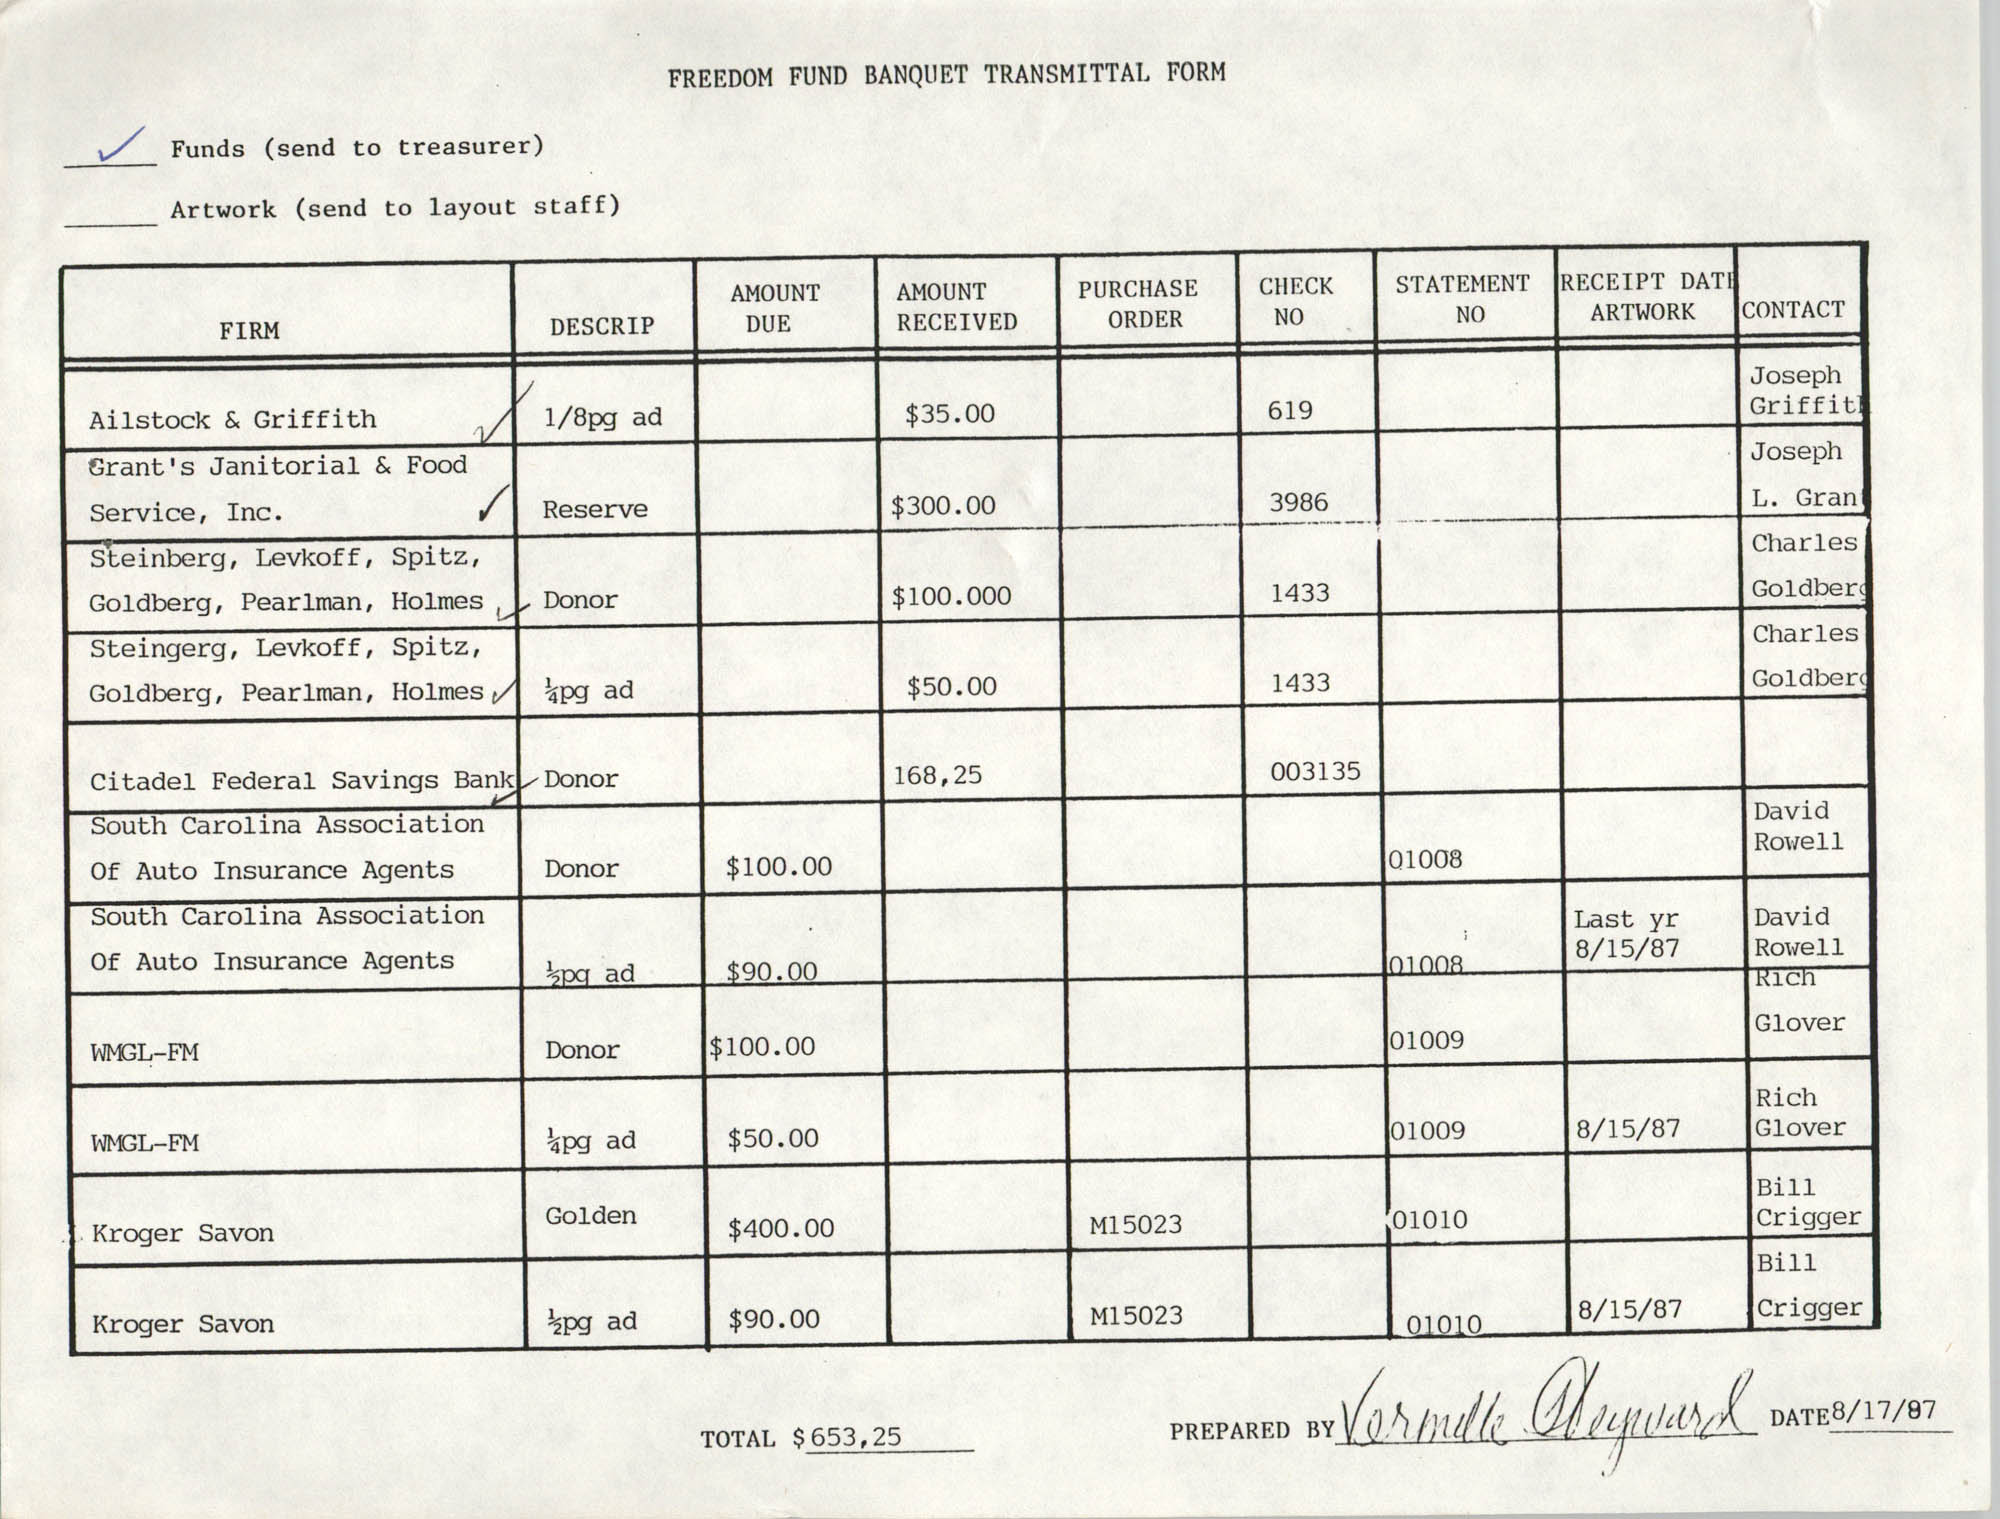 Freedom Fund Banquet Transmittal Forms, August 17, 1987, Page 5